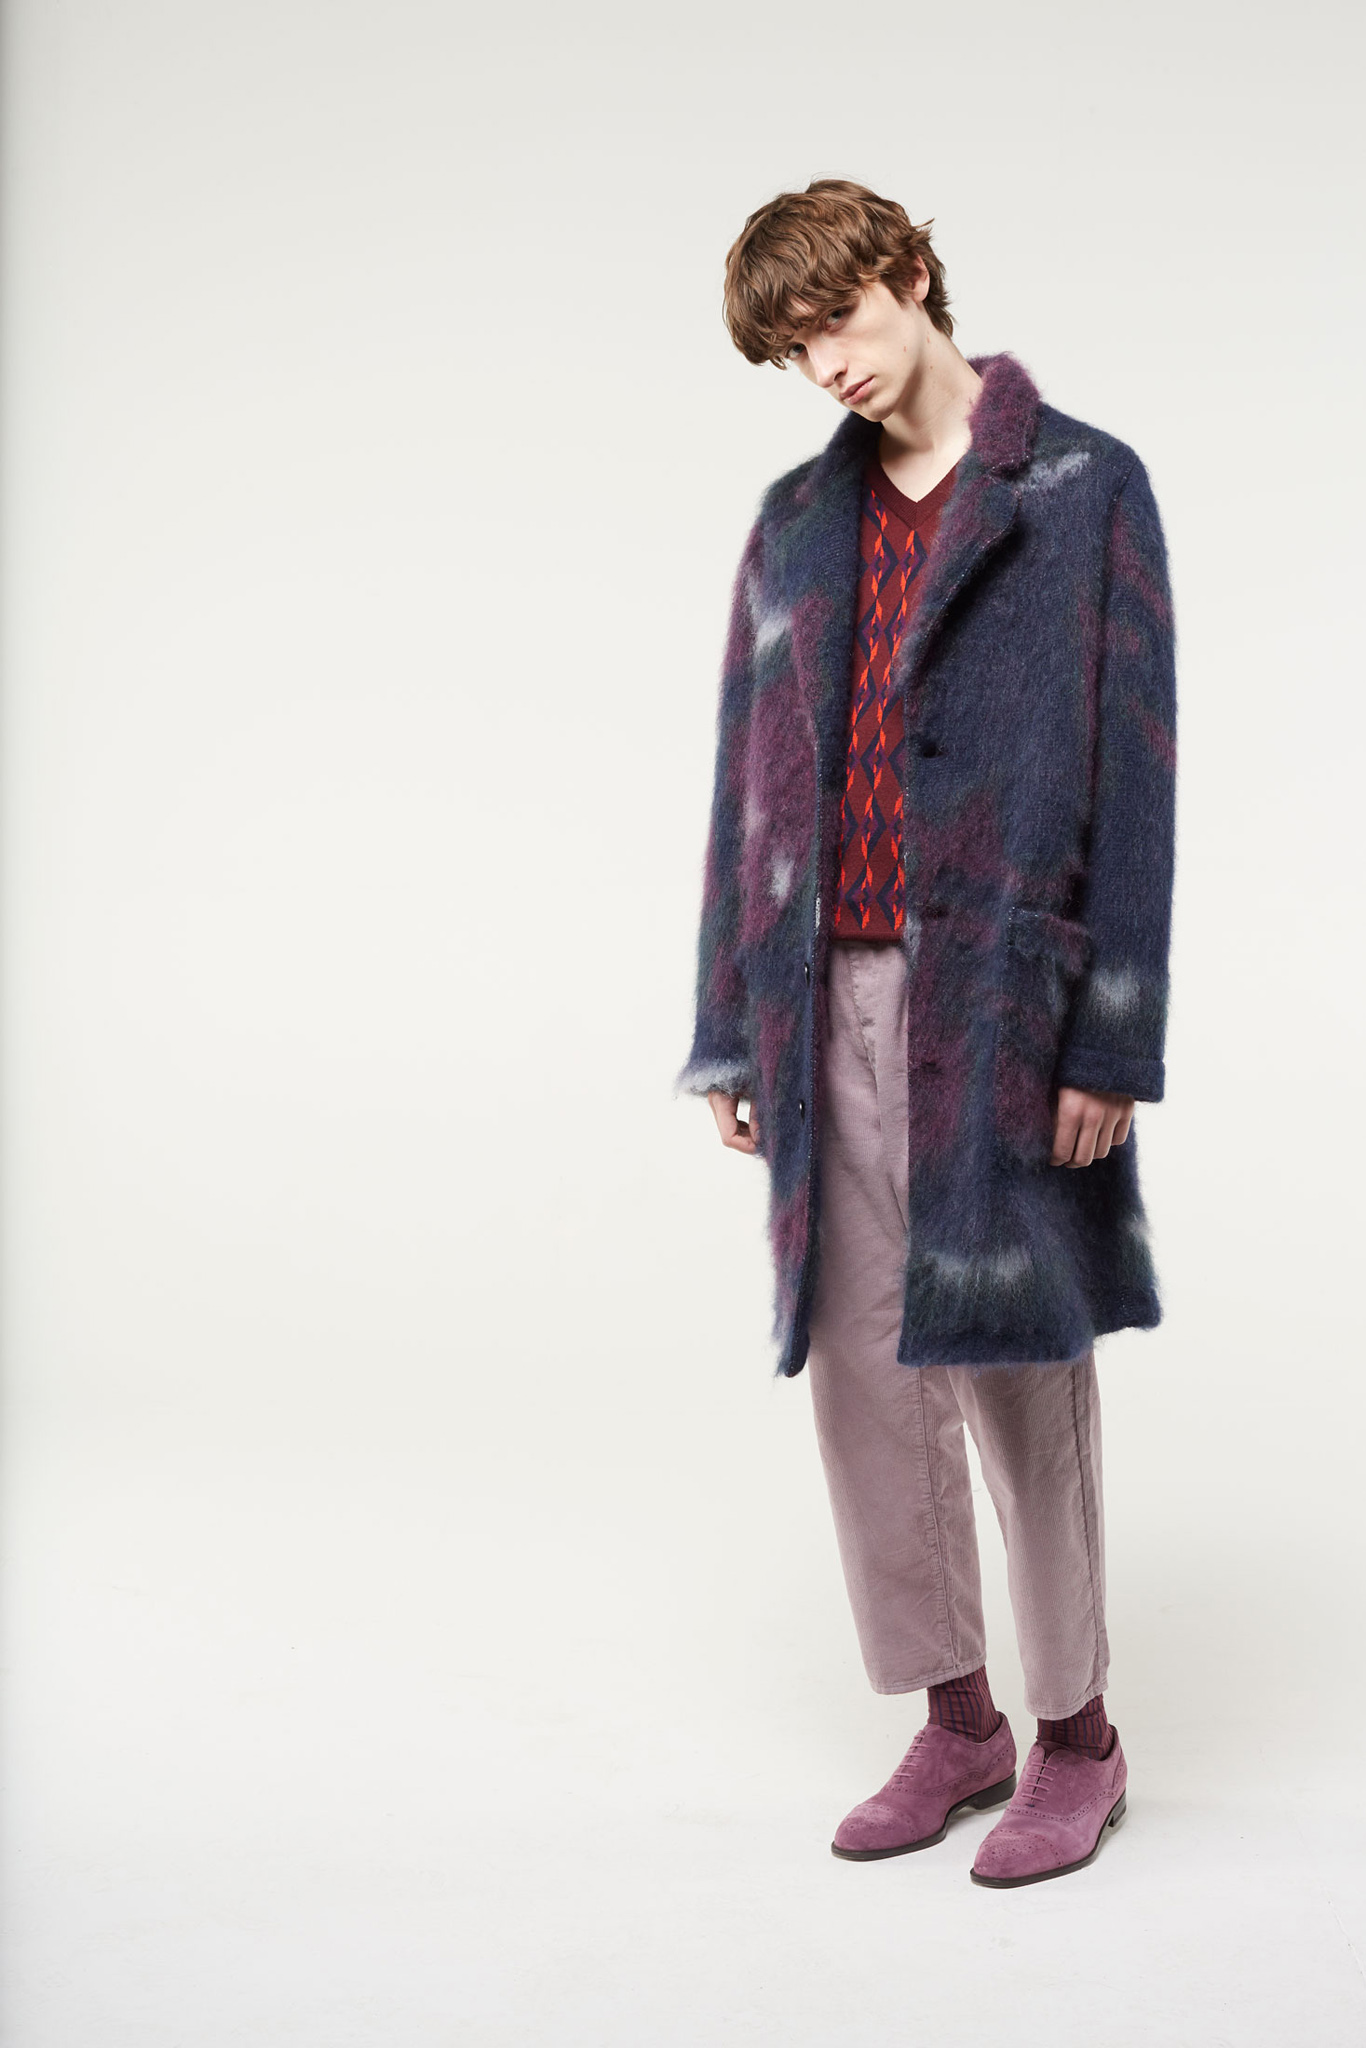 Pringle of Scotland Men's Fall 2020 – WWD